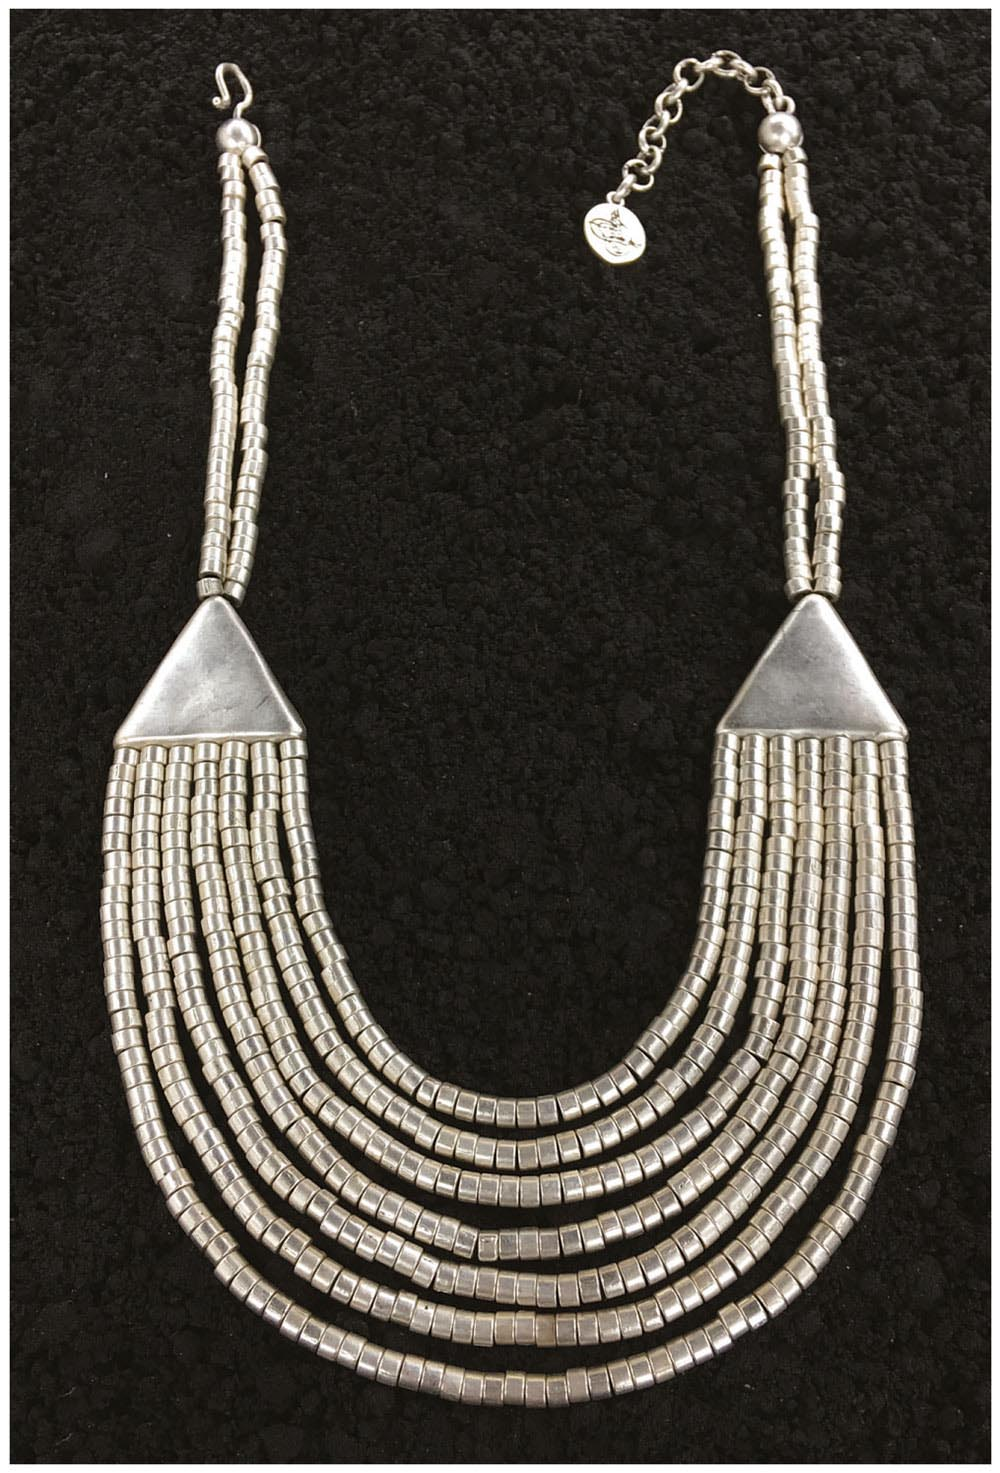 NECKLACE 1528 - SILVER PLATED